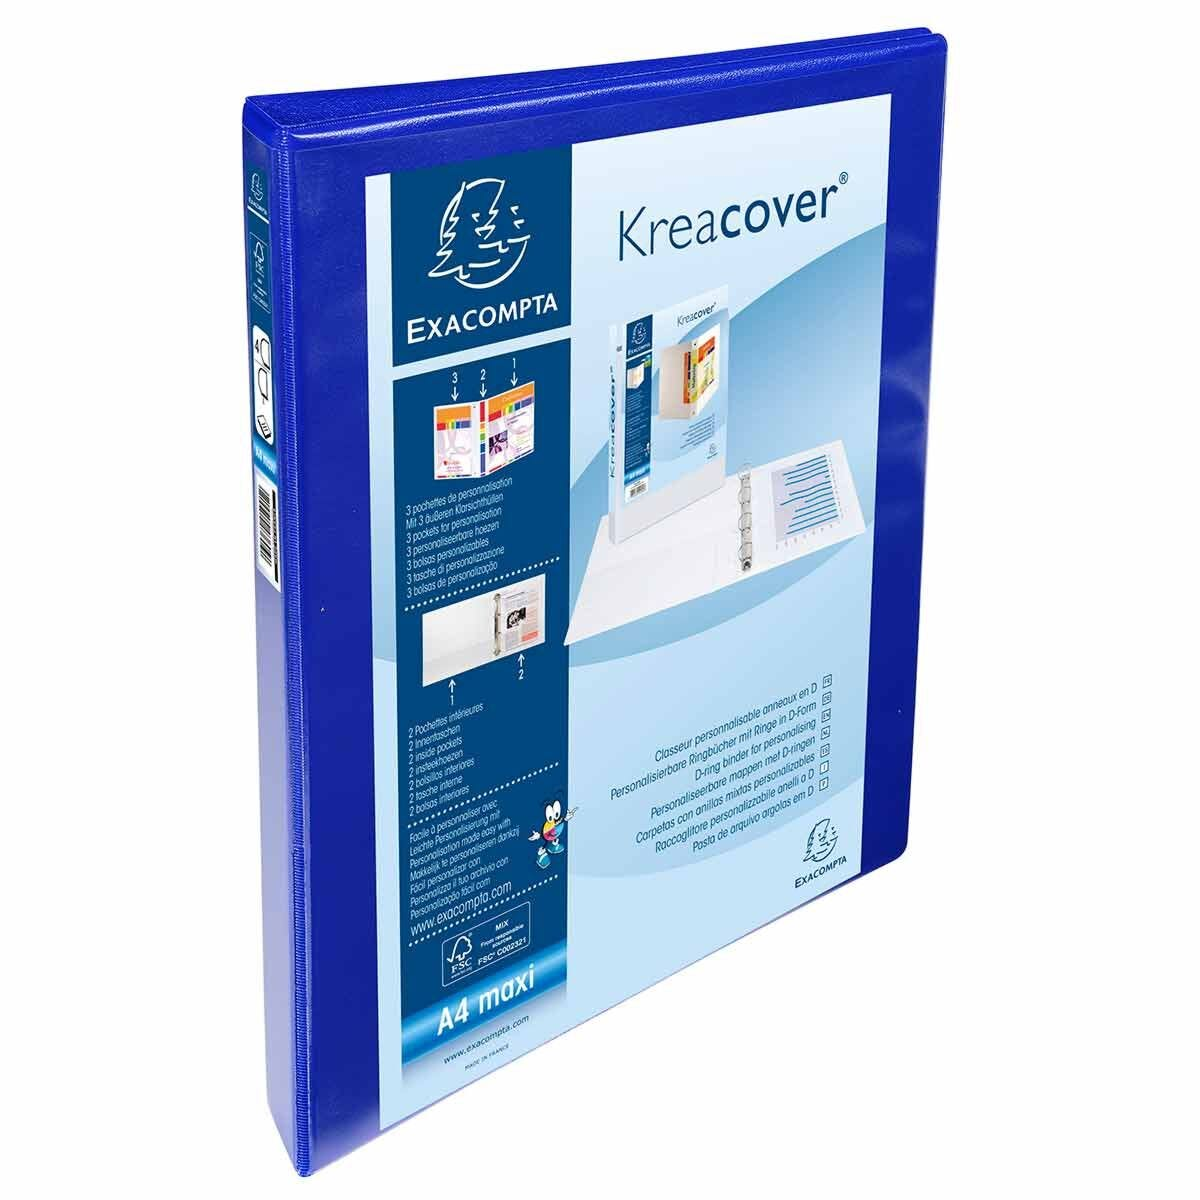 Exacompta Kreacover Personal Ring Binder A4 Plus 4 Rings 15mm 3 Pockets Pack of 10